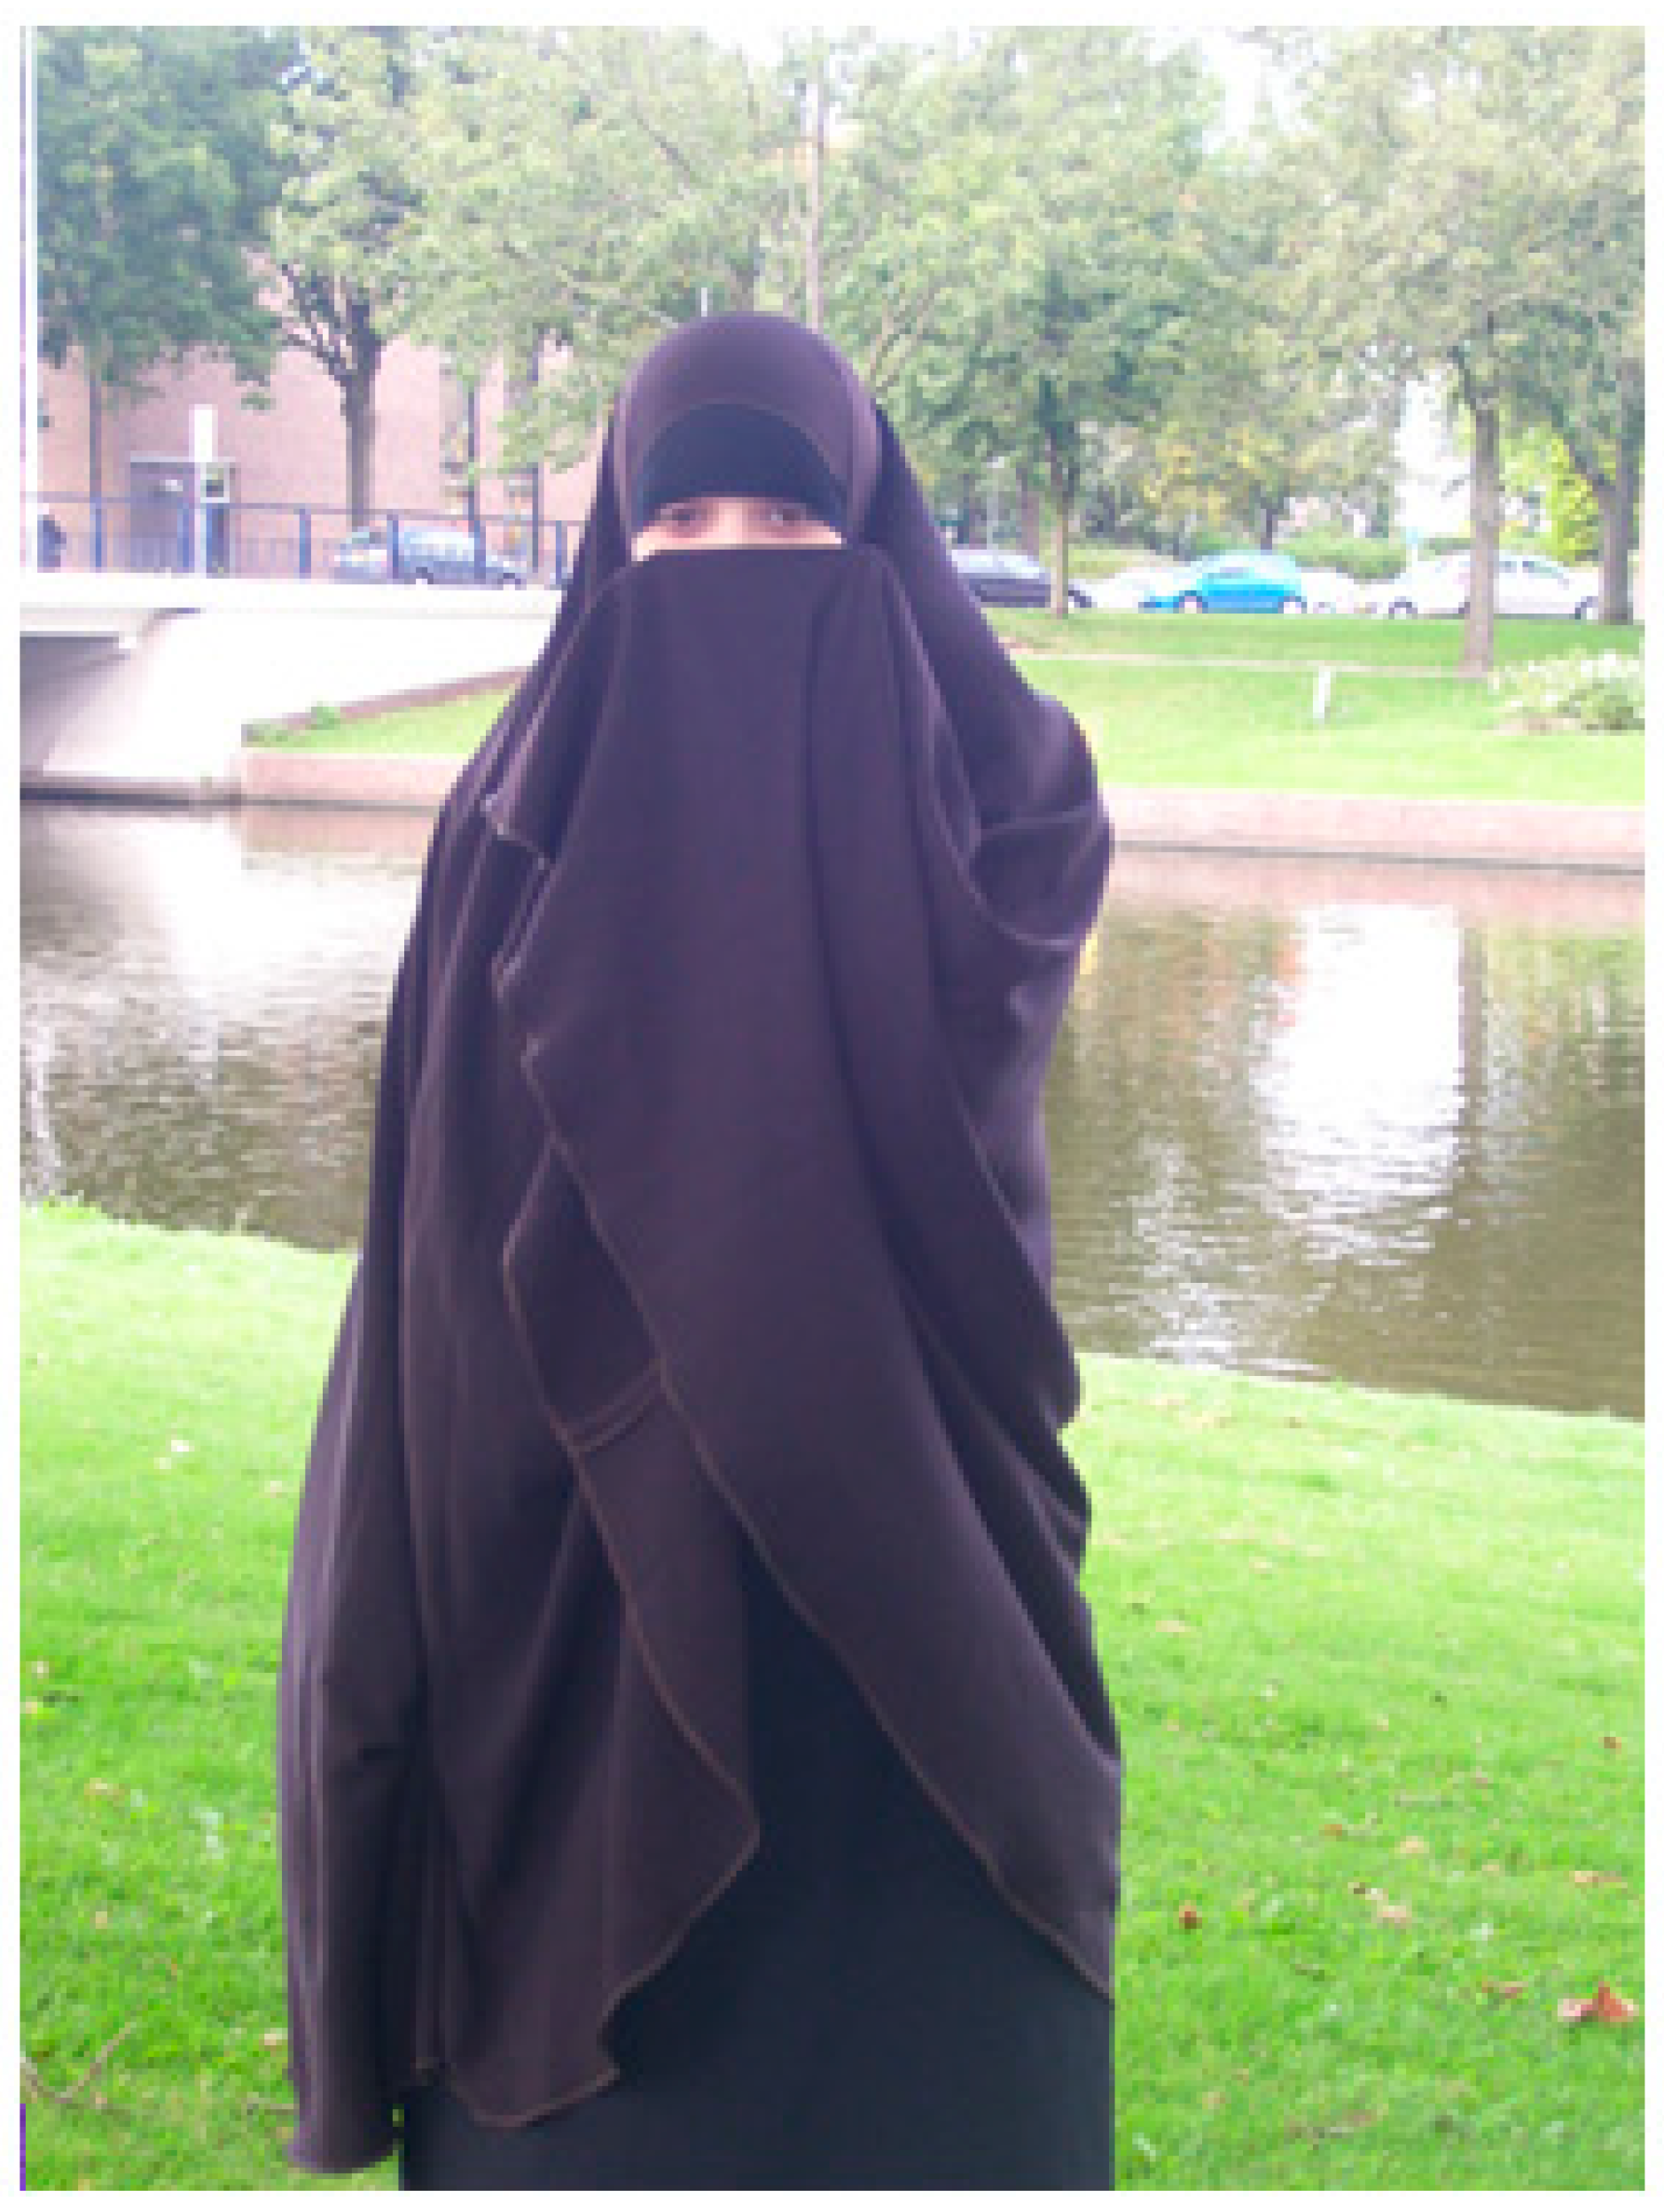 Religions   Free Full-Text   The Burka Ban: Islamic Dress, Freedom and Choice in The Netherlands in Light of the 2019 Burka Ban Law   HTML